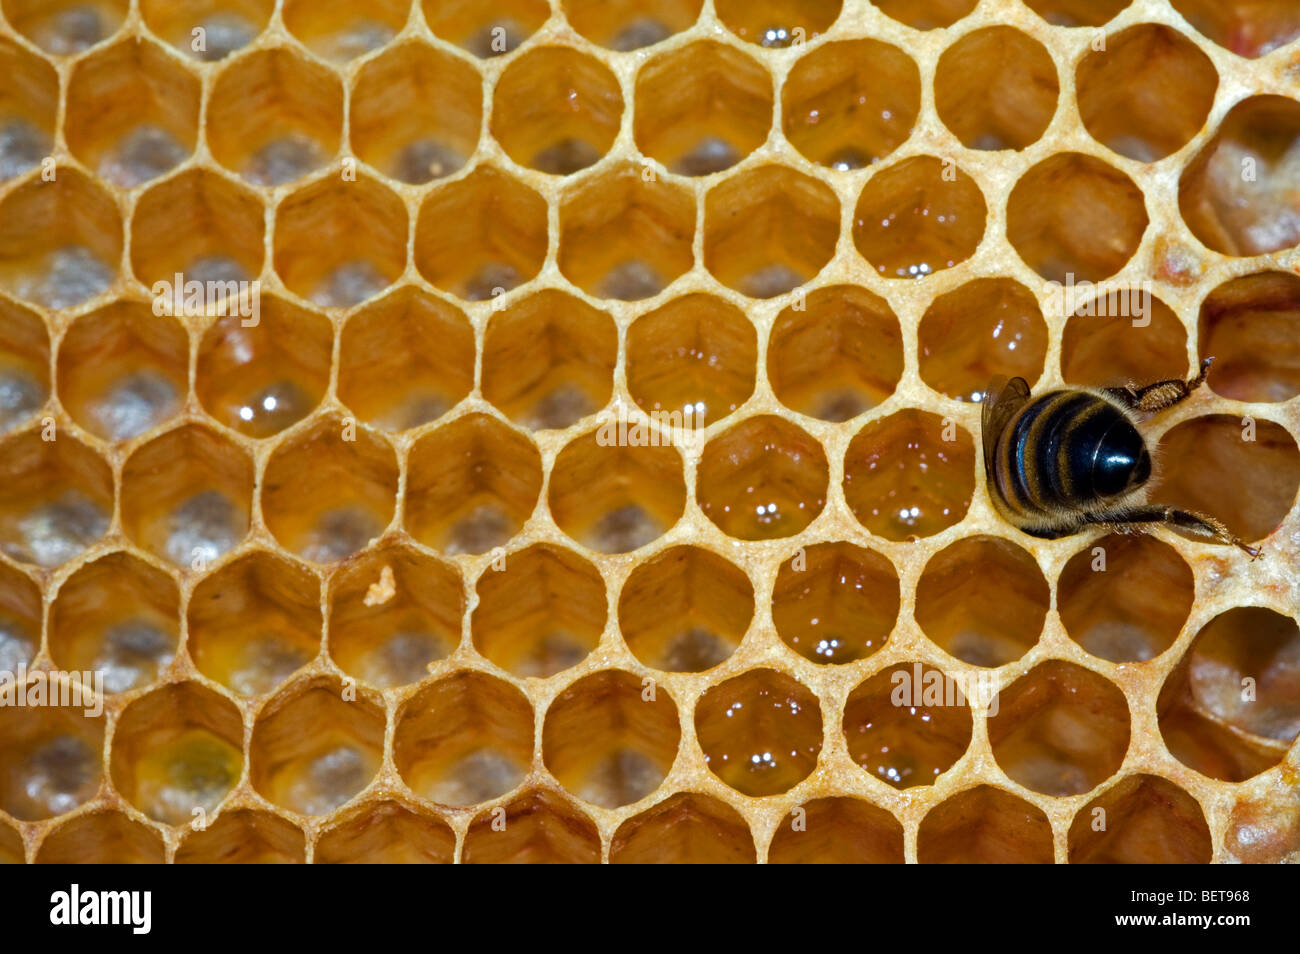 Honey bee worker (Apis mellifera) in cell of comb inside hive, Belgium - Stock Image